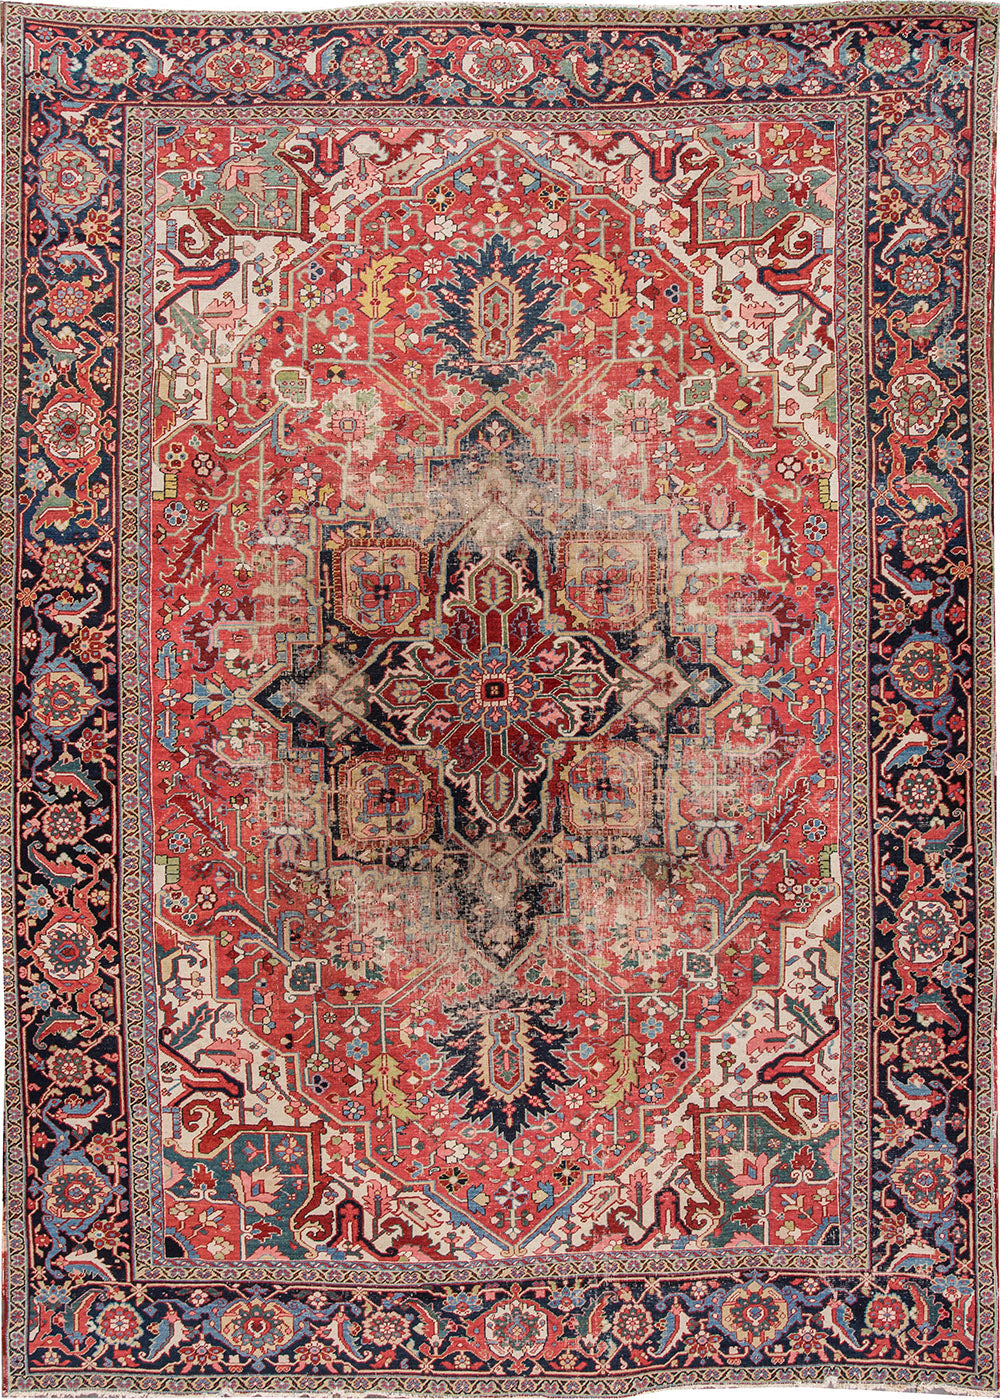 Antique Heriz Rug, 9X13